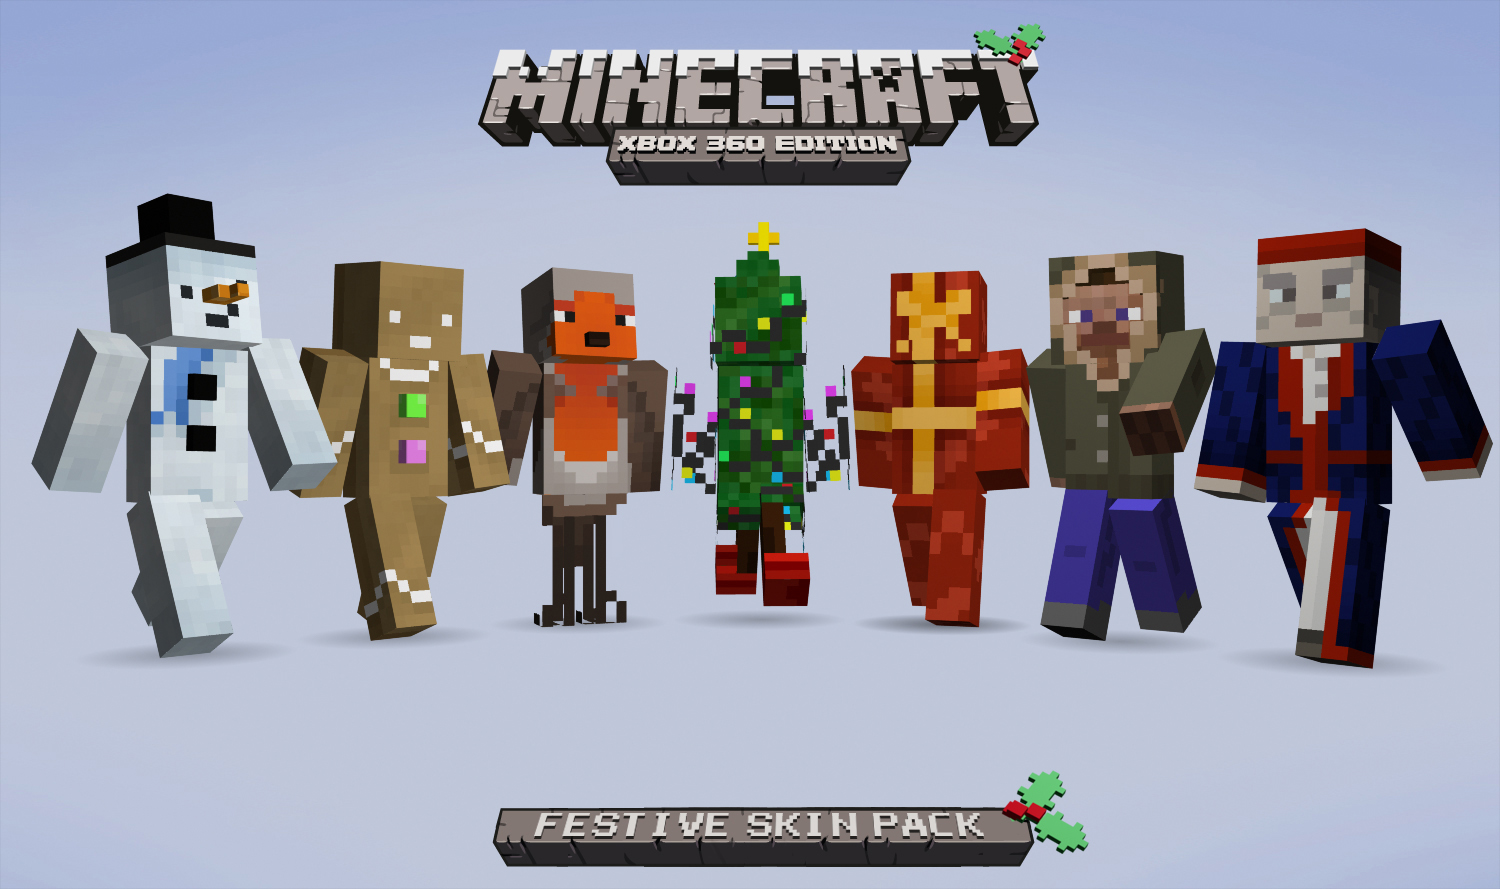 Minecraft Christmas Skins.Minecraft Xbox 360 Edition Festive Skin Pack On Sale